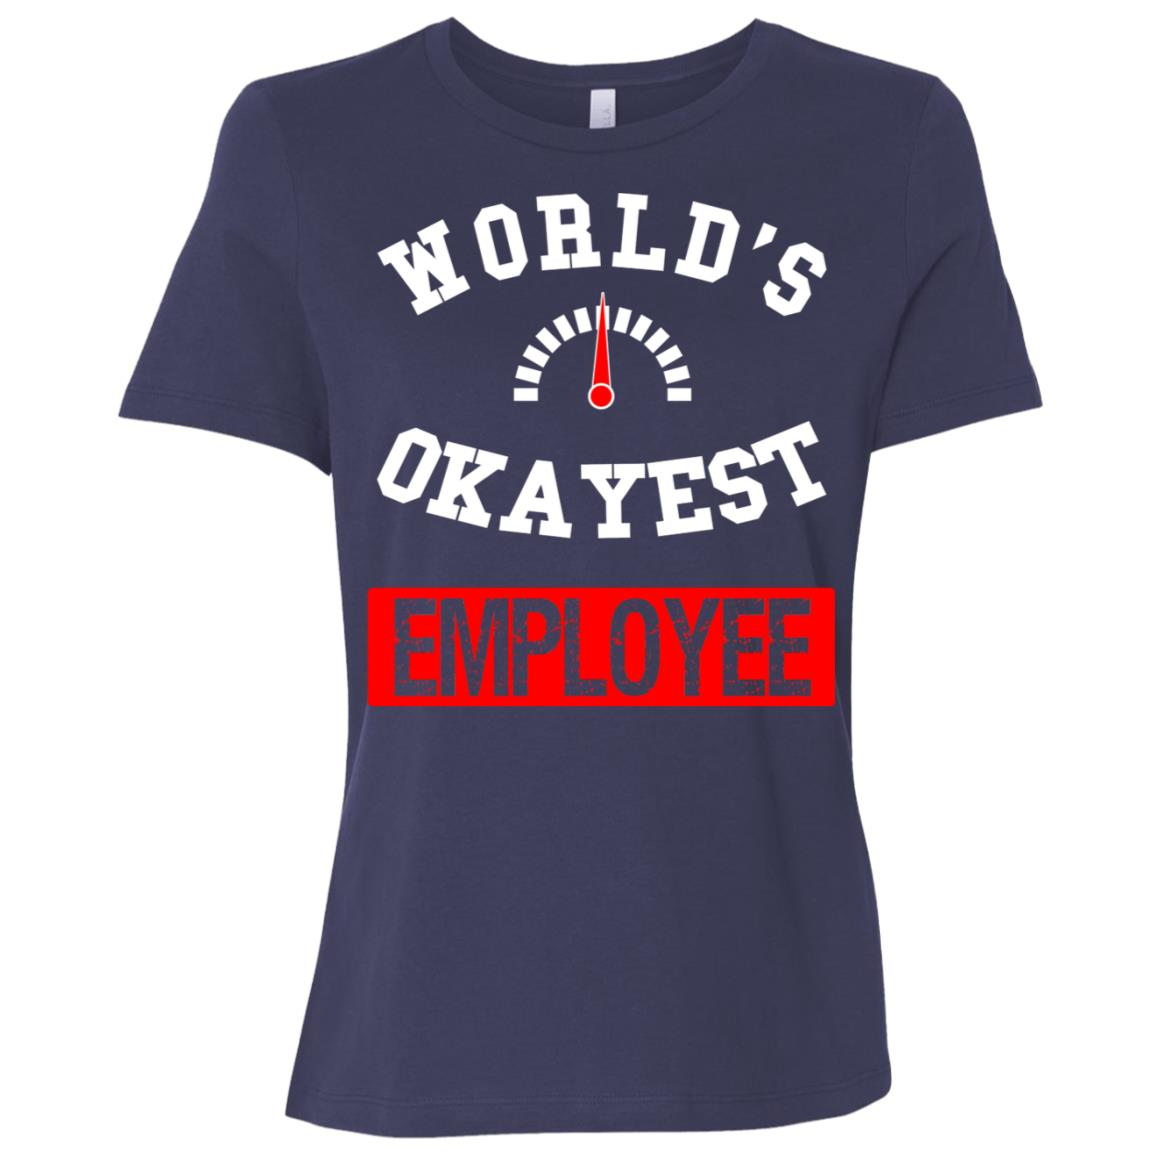 World's Okayest Employee Women Short Sleeve T-Shirt